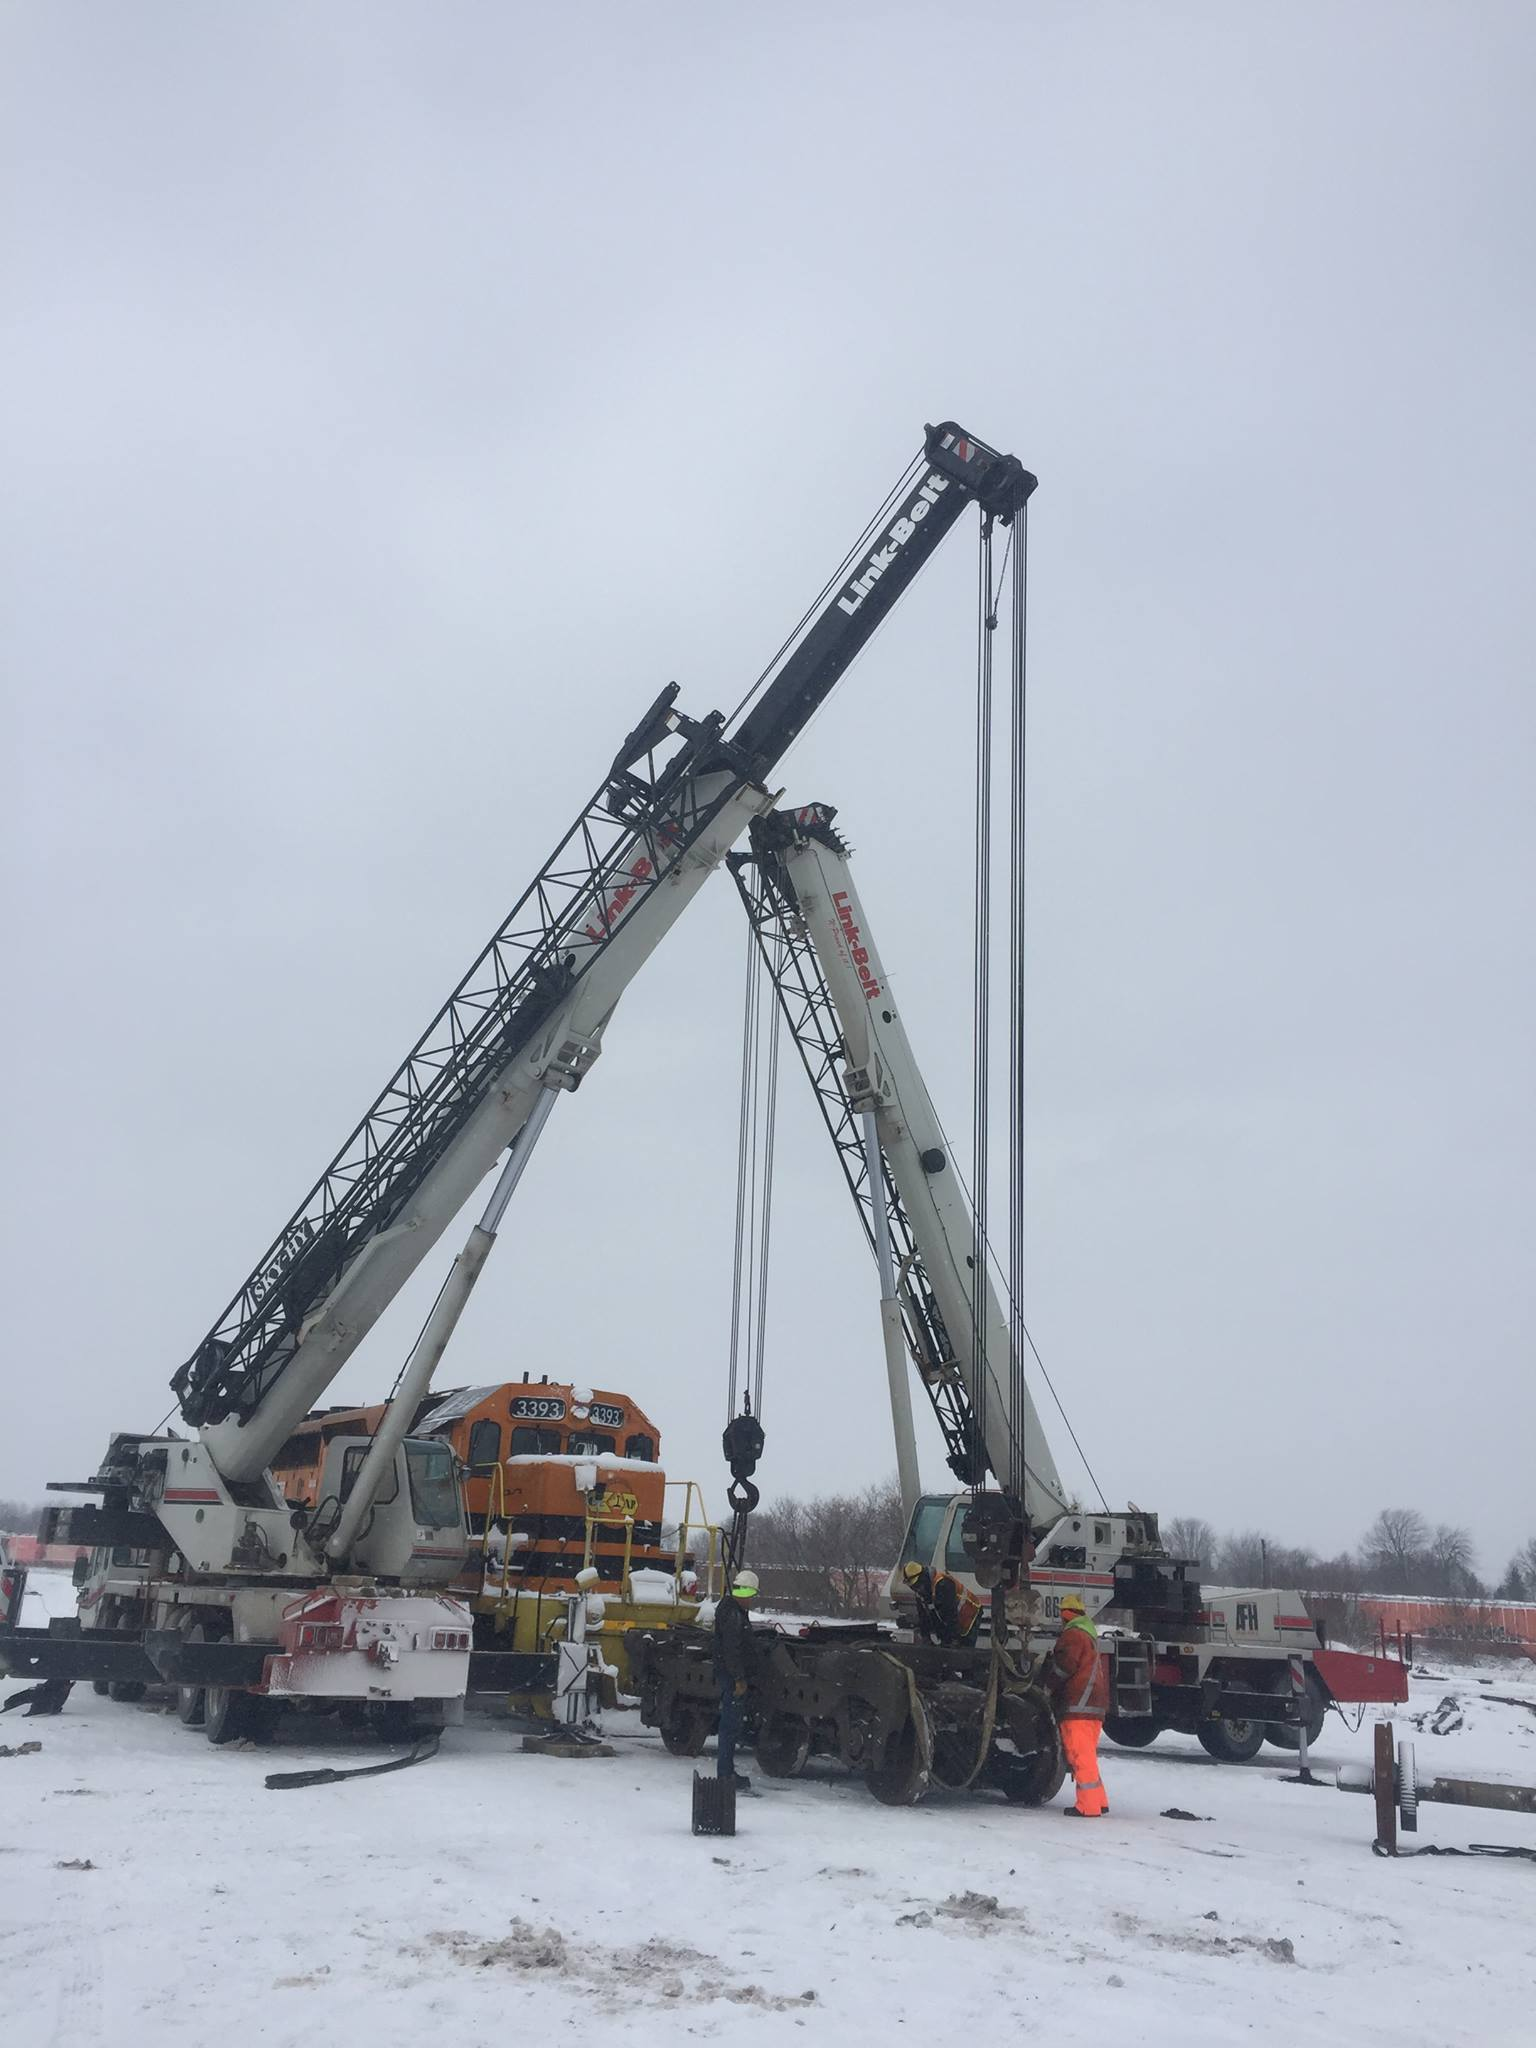 2 mobile cranes lift train car to rebuild motor